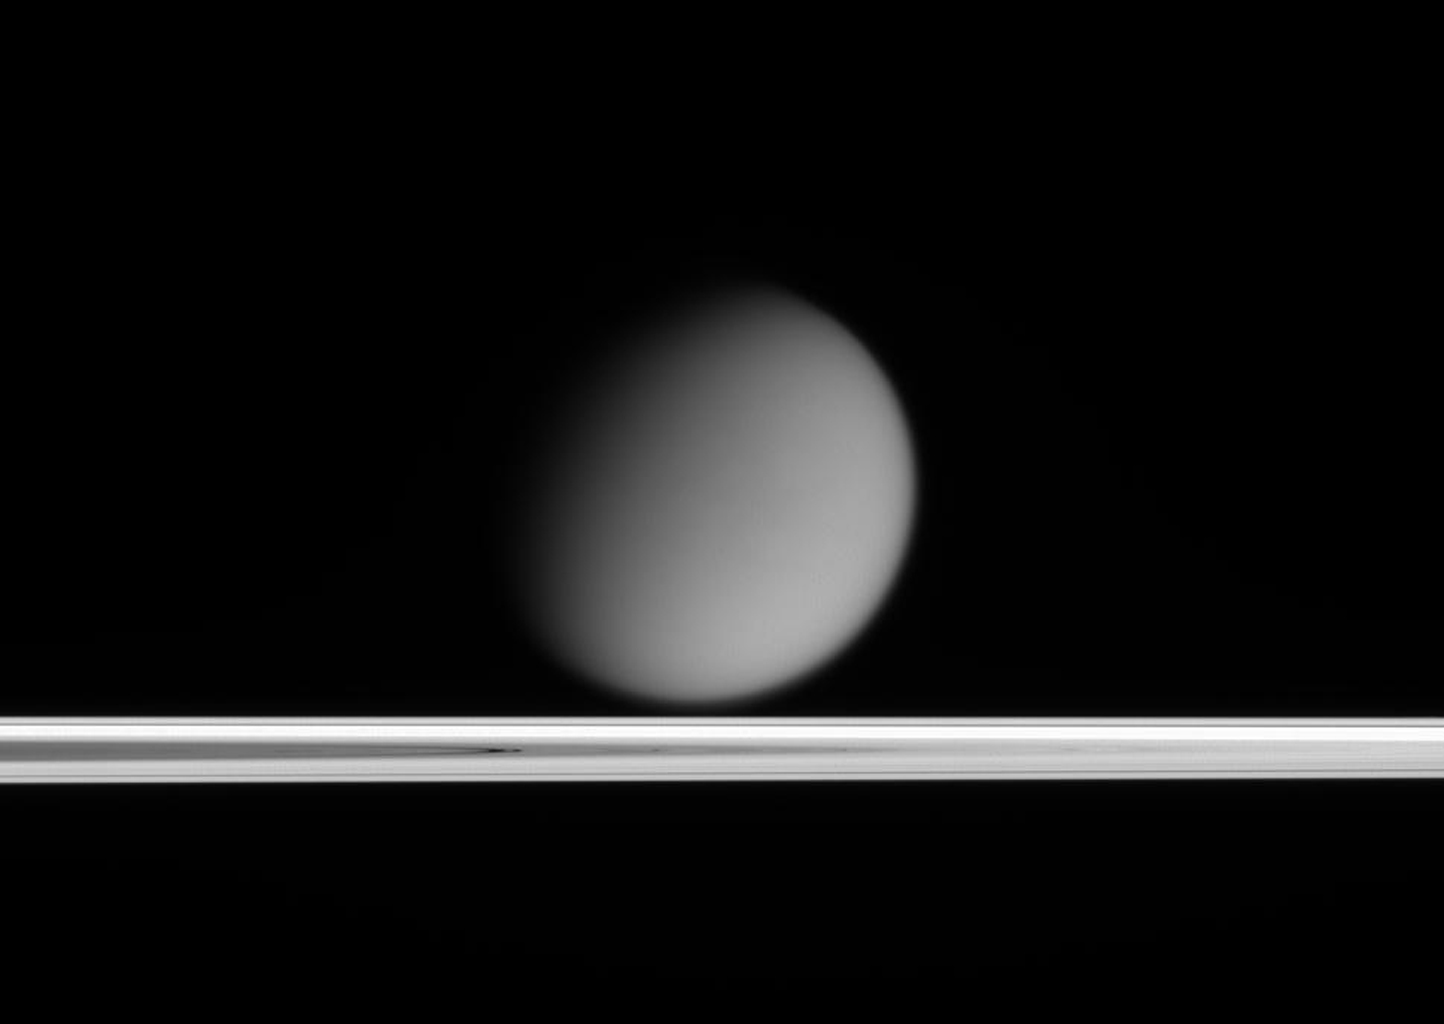 Saturn's hazy moon Titan appears to drift above Saturn's ringplane in this view taken only a tenth of a degree above the rings. This image was taken in visible light with NASA's Cassini spacecraft's narrow-angle camera on March 25, 2005.